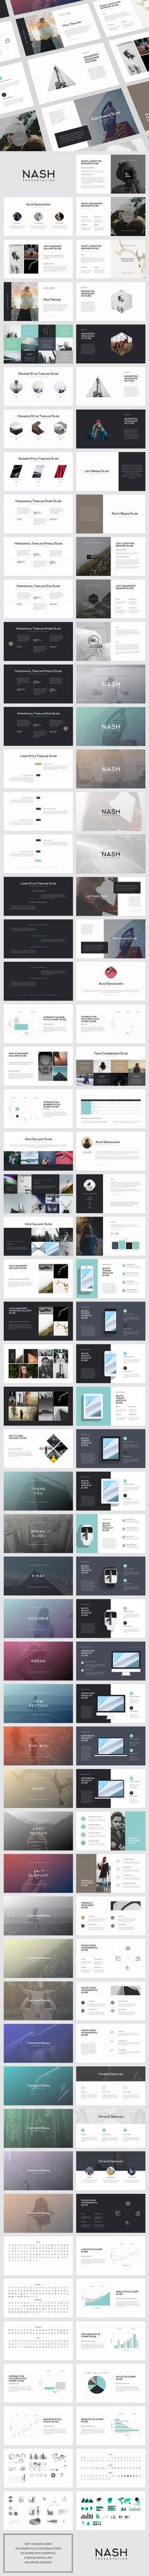 NASH Keynote Presentation: Minimal template design for Keynote. #design Download: https://creativemarket.com/GoaShape/494082-NASH-Keynote-Presentation-BONUS/?u=nexion